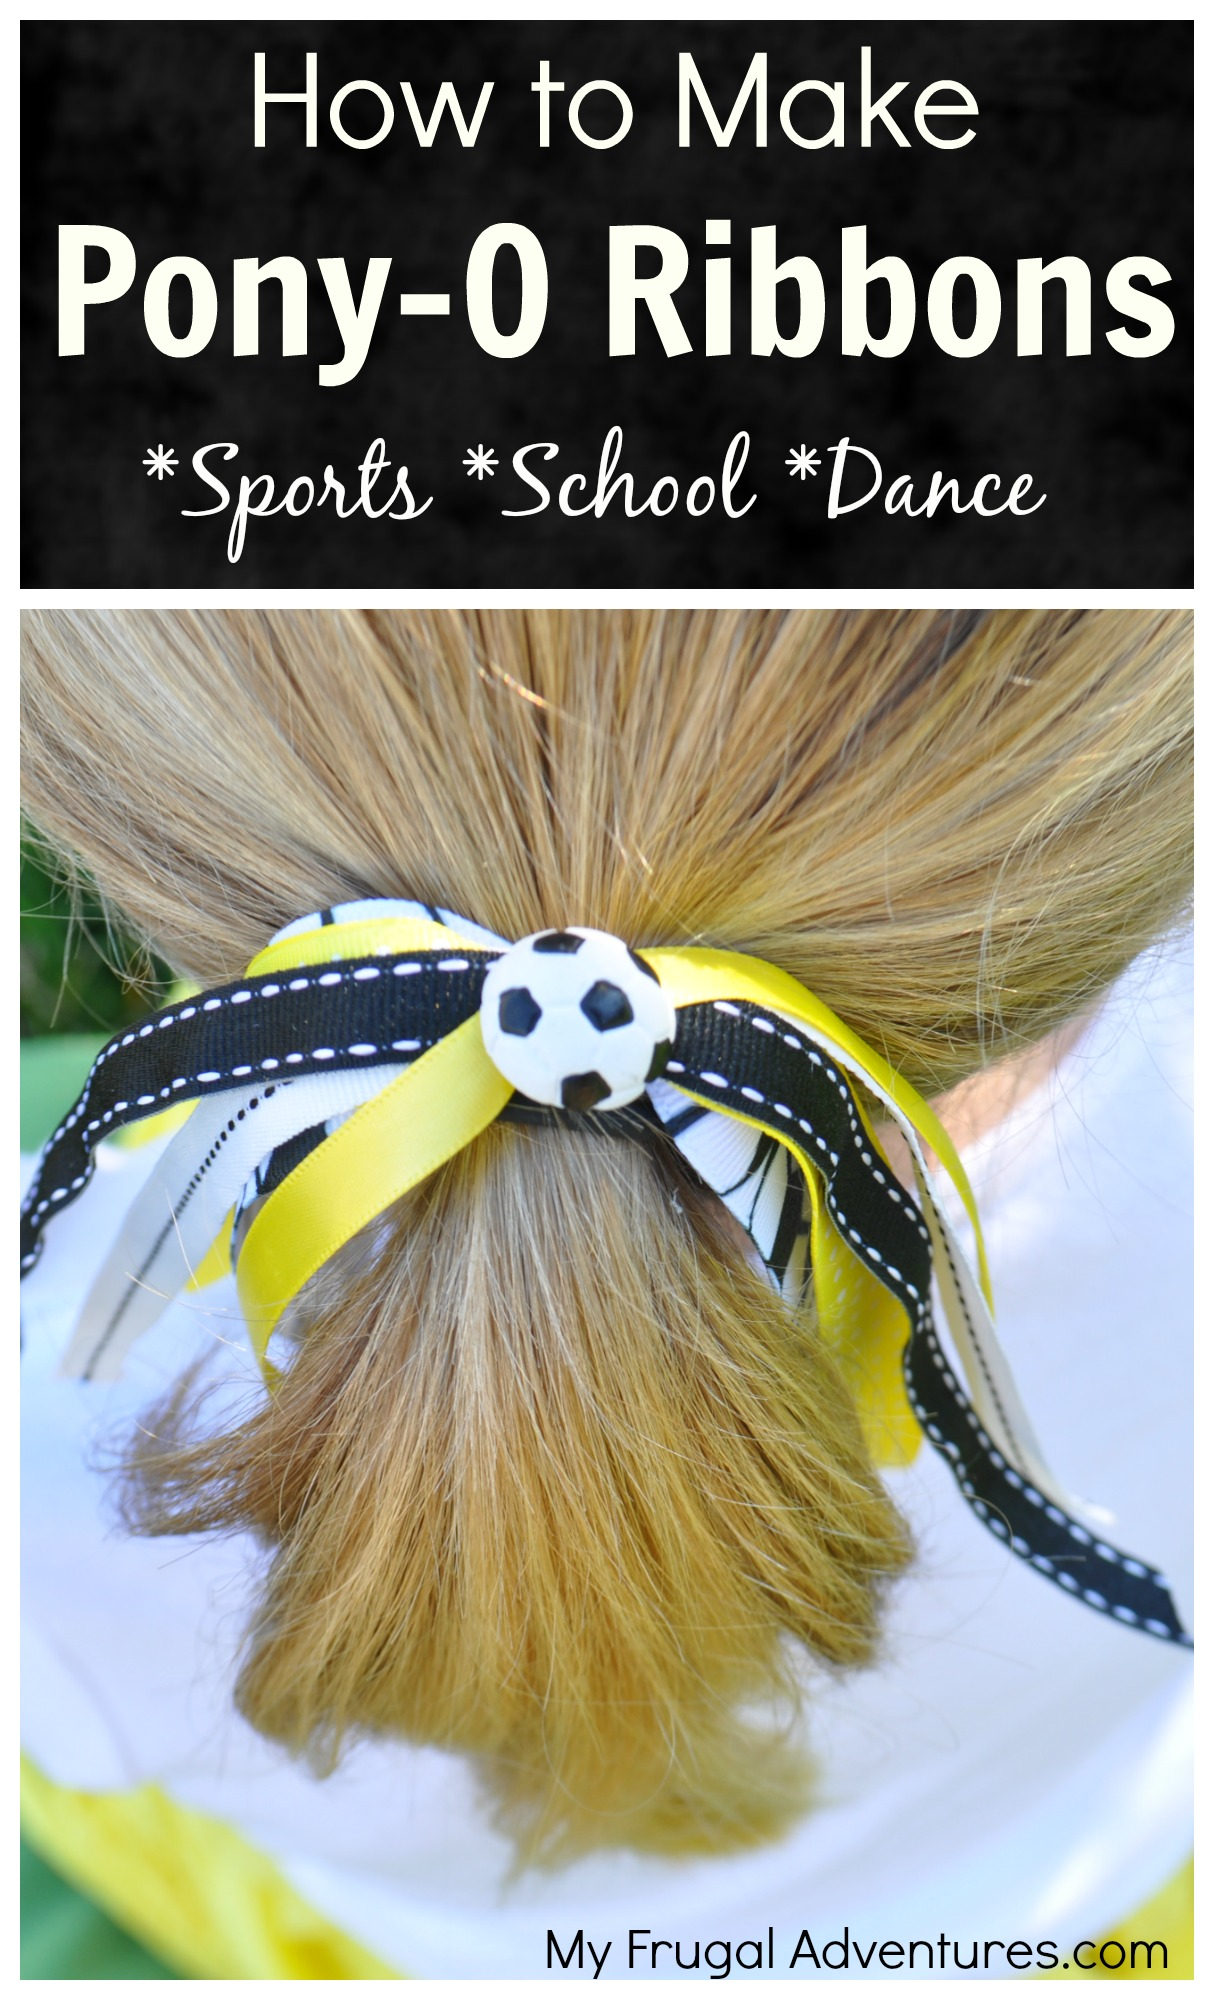 How to Make Ponytail Ribbons for Girls (Pony-os) - My Frugal